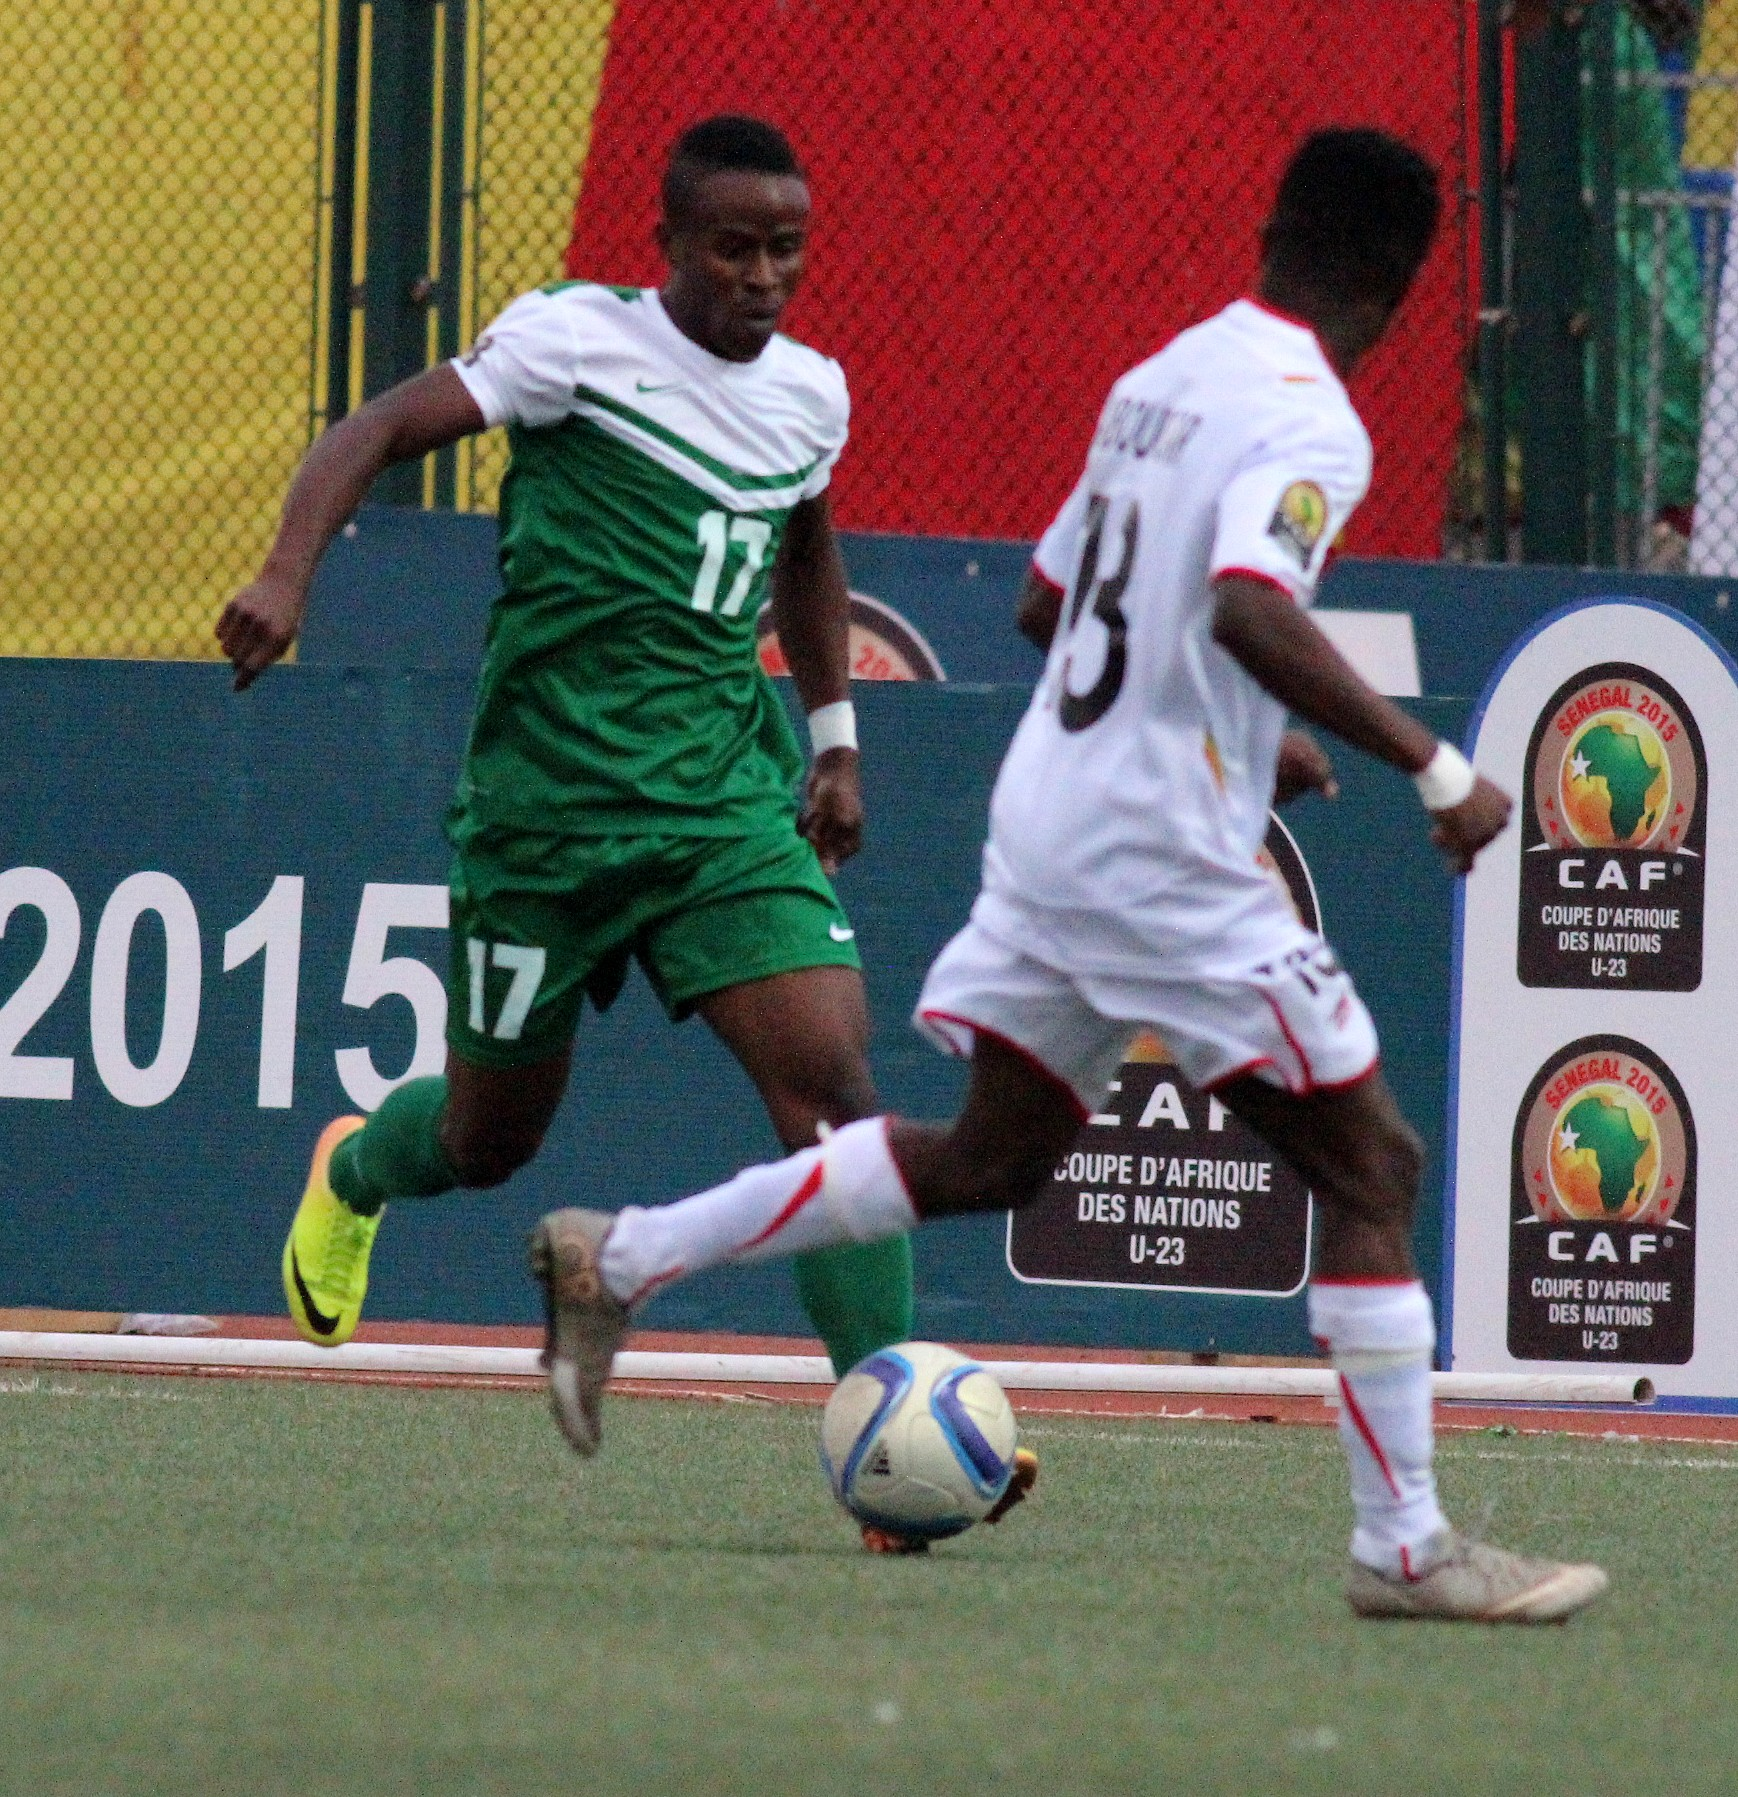 U-23 AFCON: Awoniyi, Okechukwu, Dimgba Return For Final